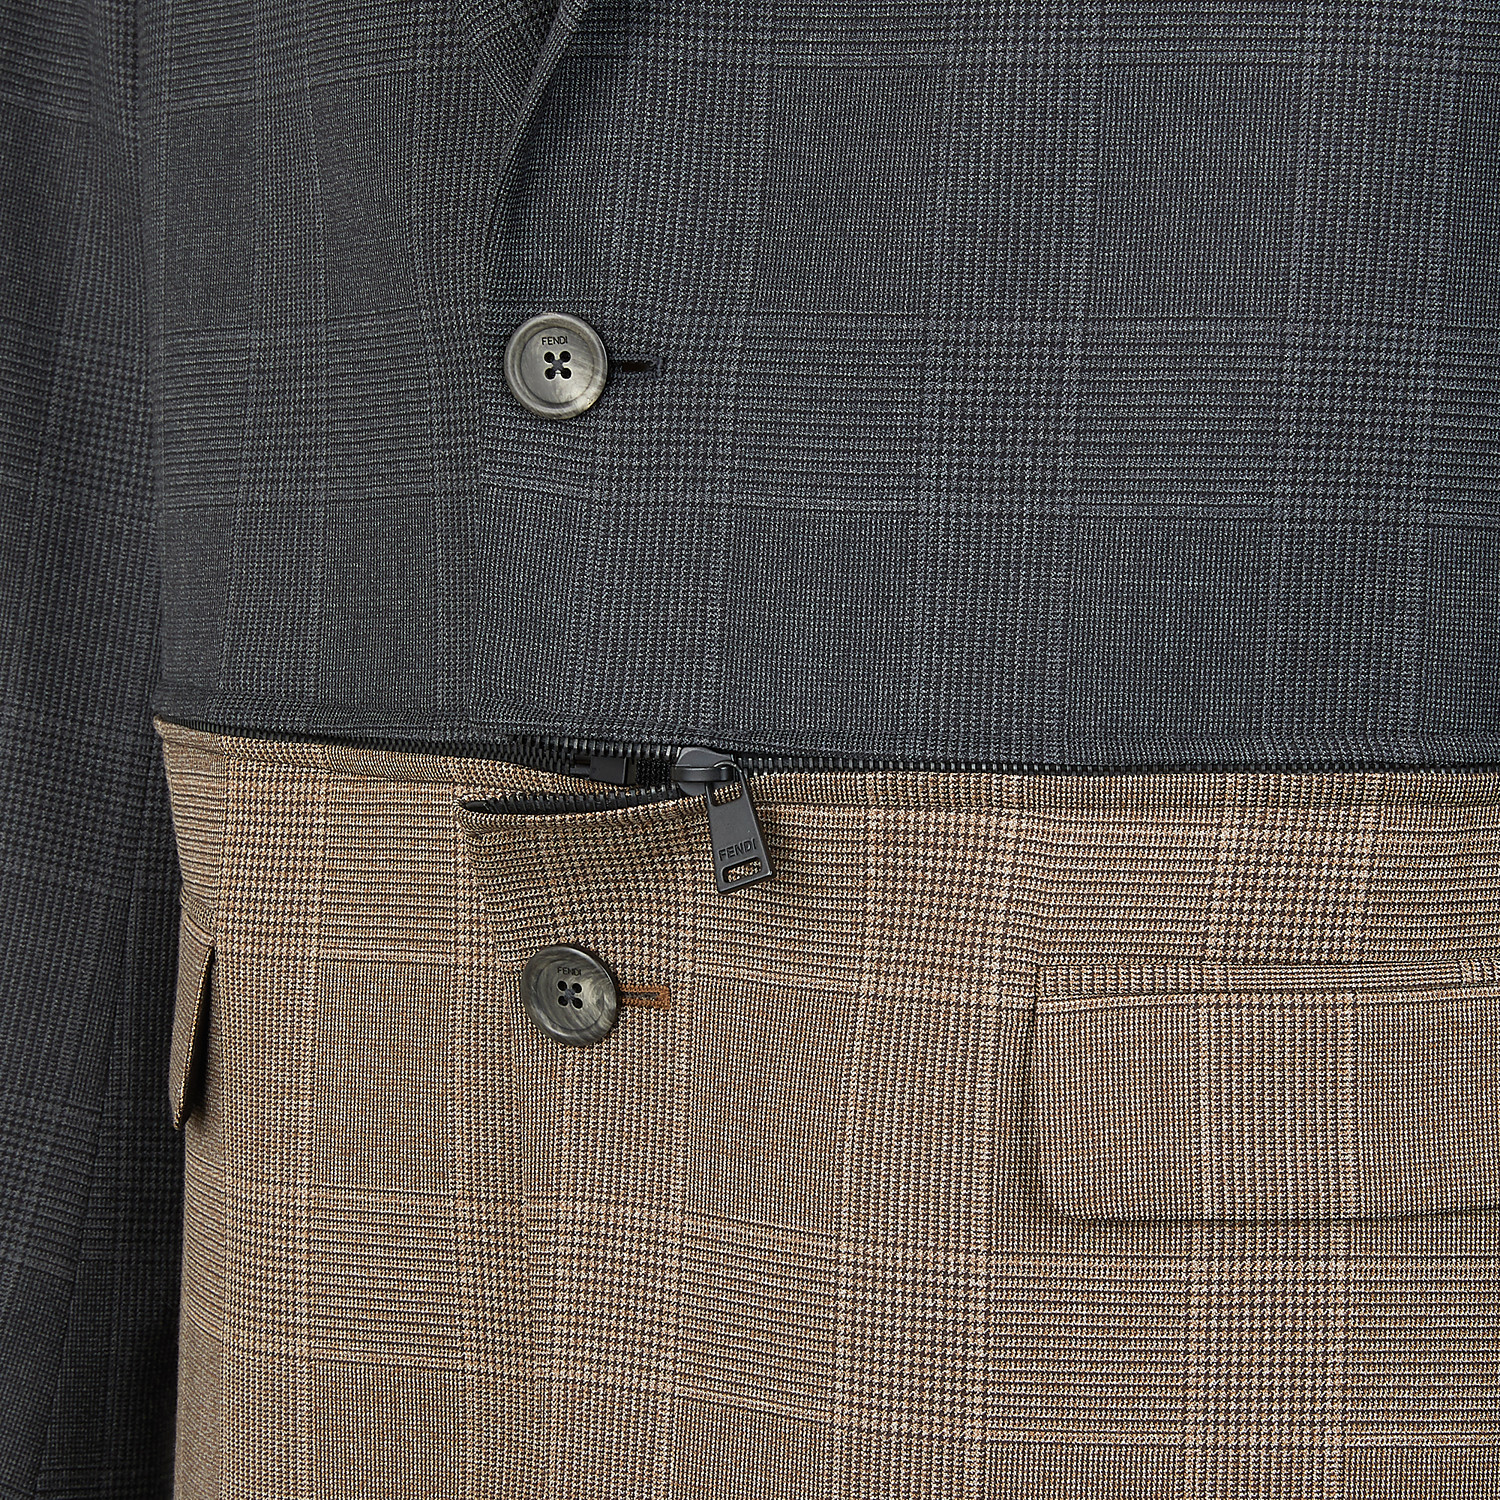 FENDI JACKET - Multicolour Prince of Wales check blazer - view 4 detail